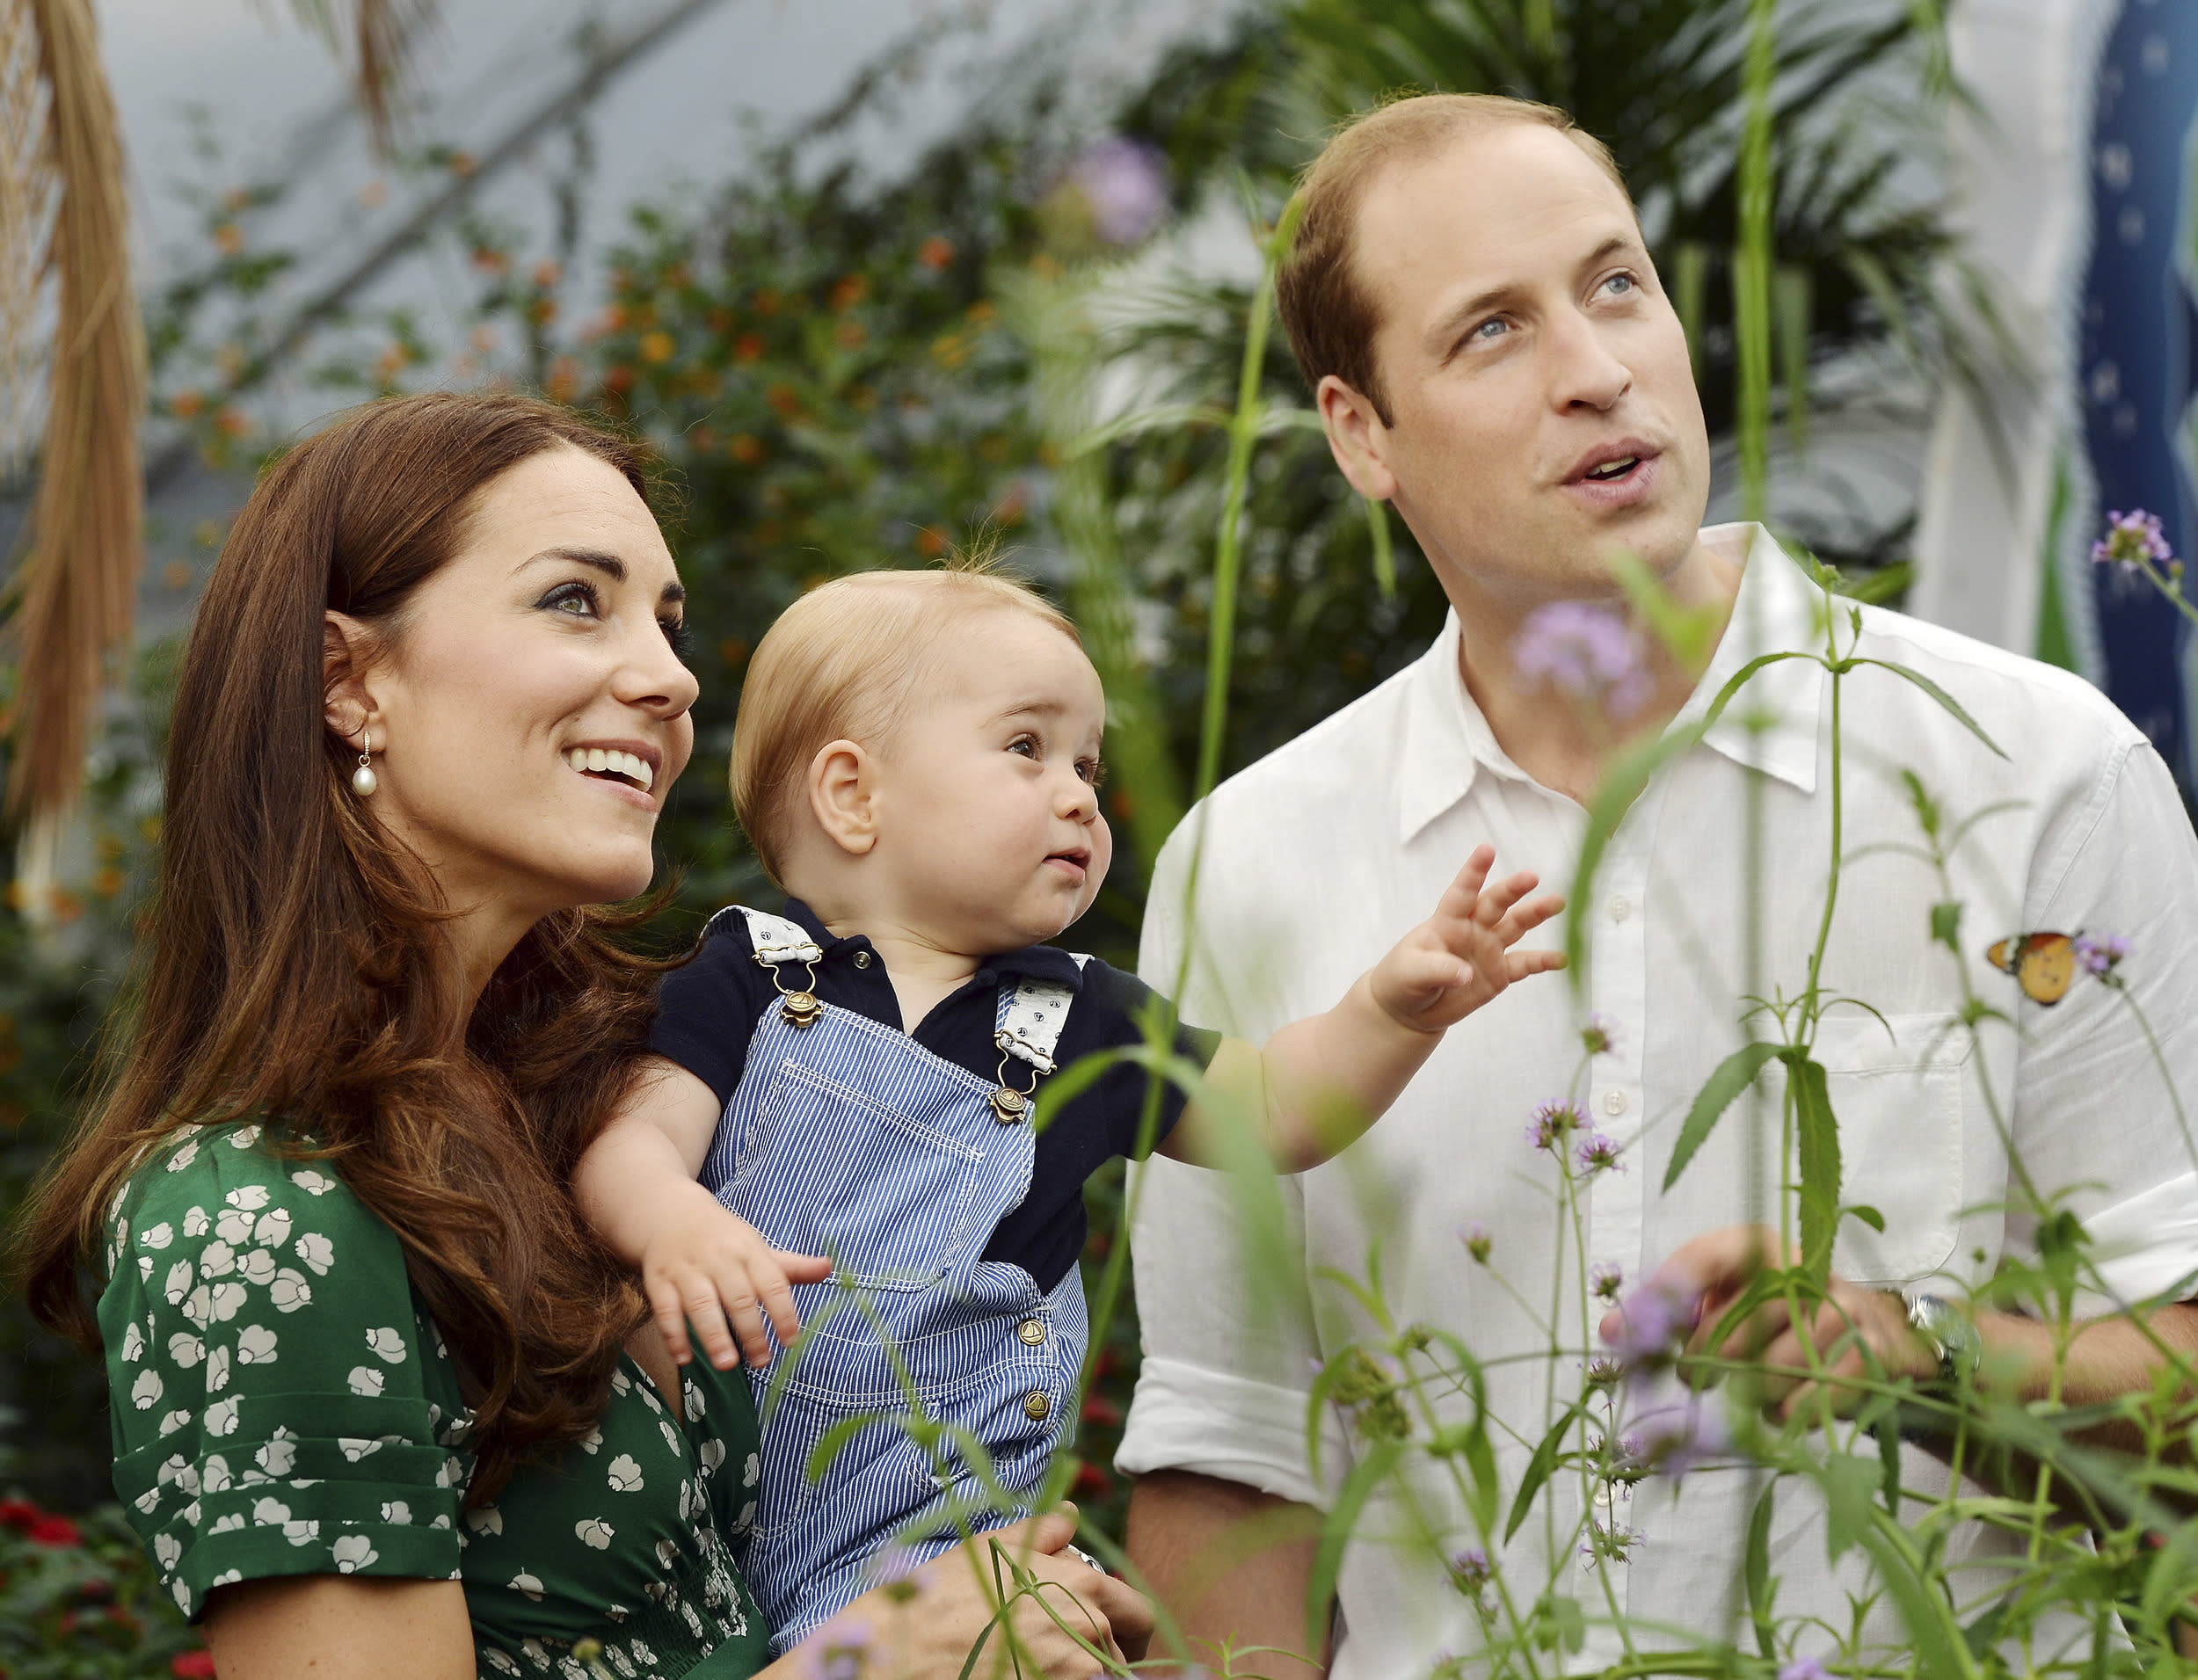 Britain's Catherine, Duchess of Cambridge, carries her son Prince George alongside her husband Prince William as they visit the Sensational Butterflies exhibition at the Natural History Museum in London, July 2, 2014. Prince George celebrates his first birthday on July 22. Picture taken July 2, 2014. REUTERS/John Stillwell/Pool (BRITAIN - Tags: ROYALS SOCIETY TPX IMAGES OF THE DAY) ATTENTION EDITORS - FOR EDITORIAL USE ONLY. NOT FOR SALE FOR MARKETING OR ADVERTISING CAMPAIGNS